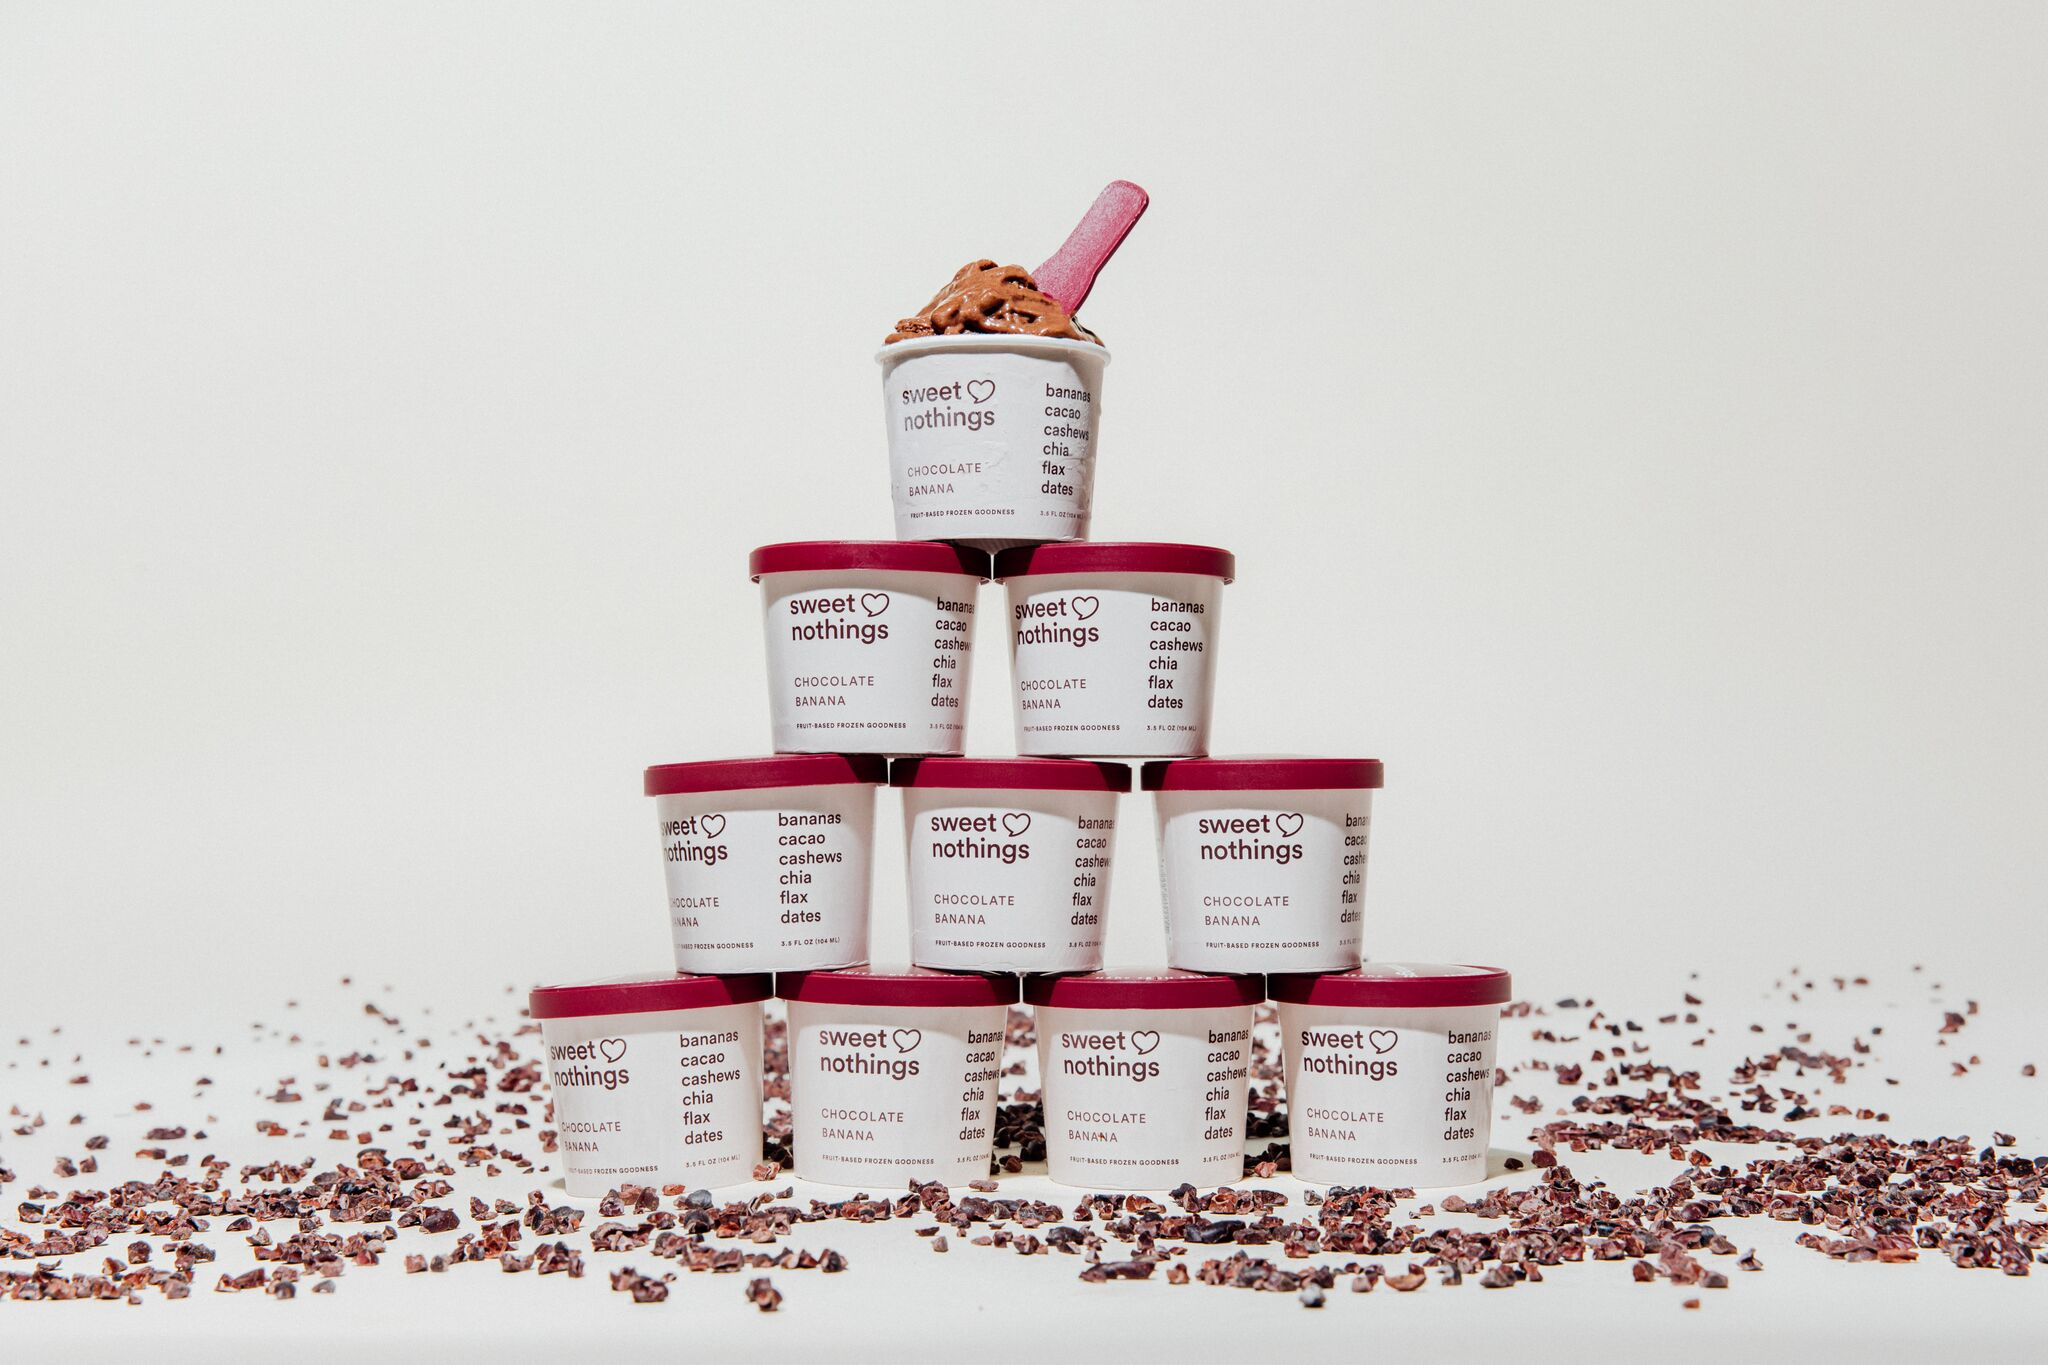 Healthy Meets Delicious - Every delicious cup is made with only real ingredients that you can recognize and pronounce, including functional superfoods like flax and chia. It is healthy enough for breakfast, wholesome enough for a snack and delicious enough for dessert.